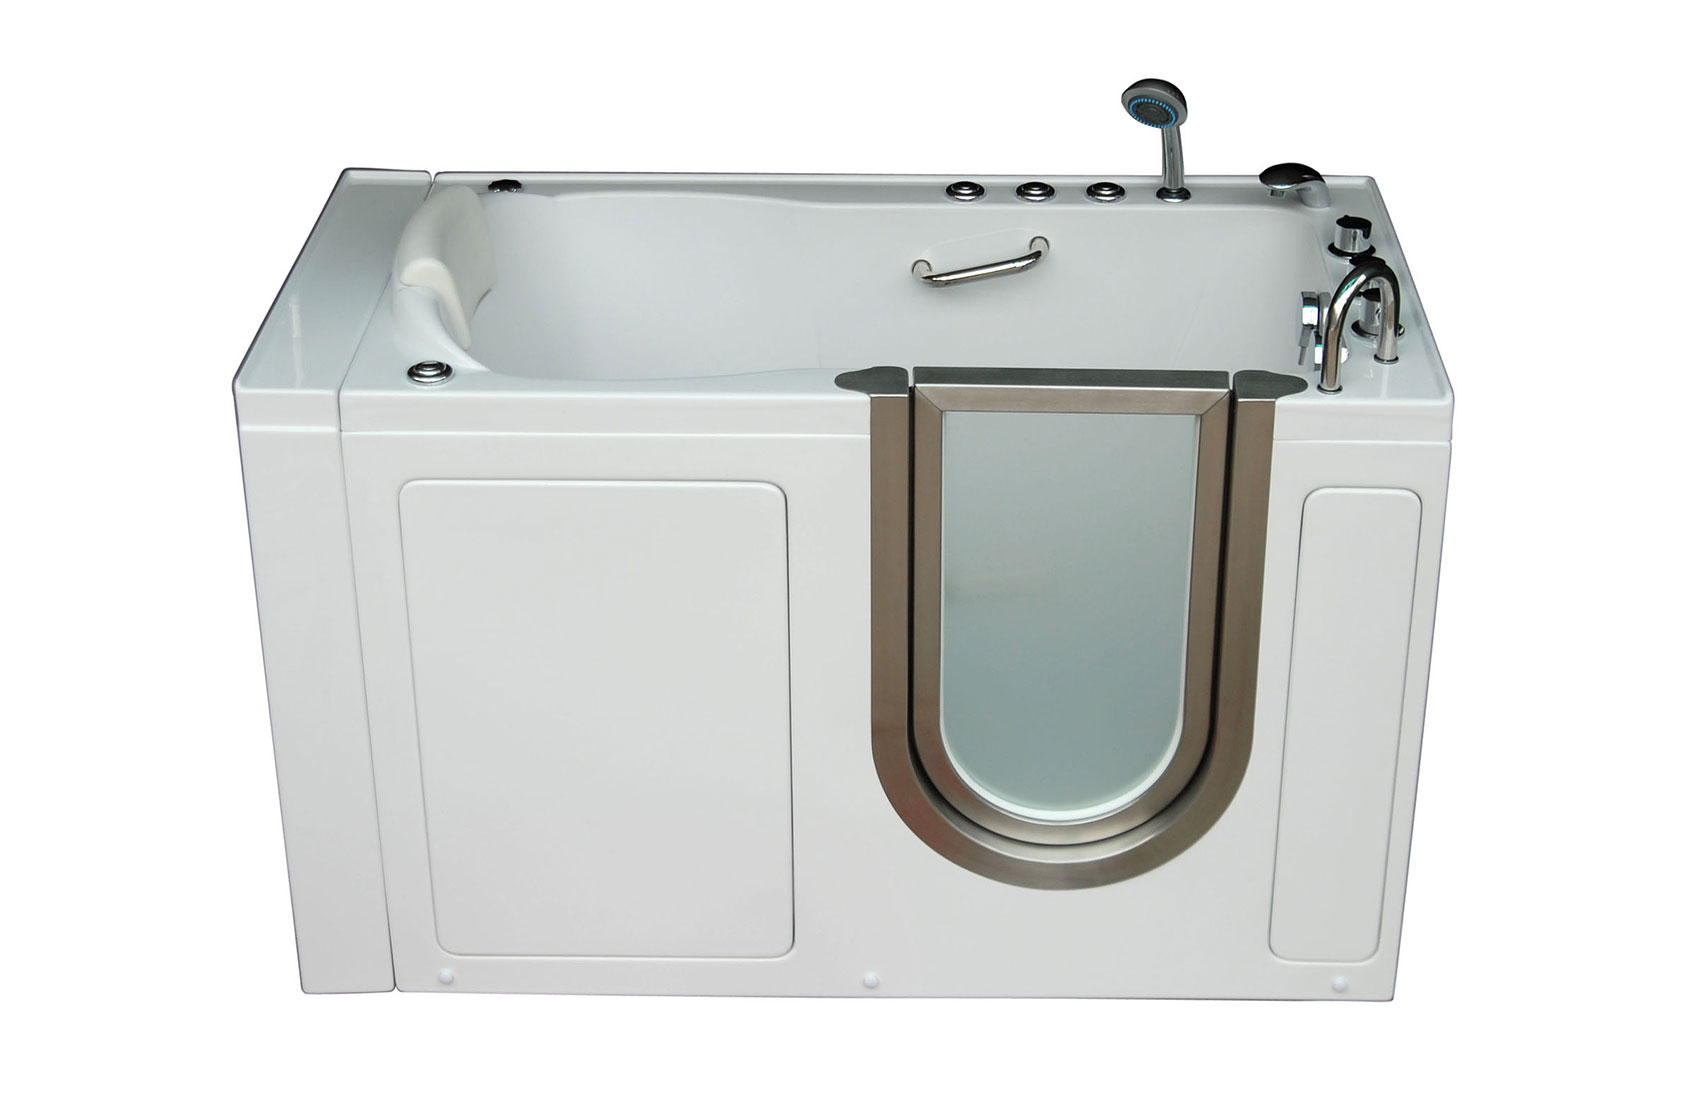 Ella's Deluxe Walk-In Tub